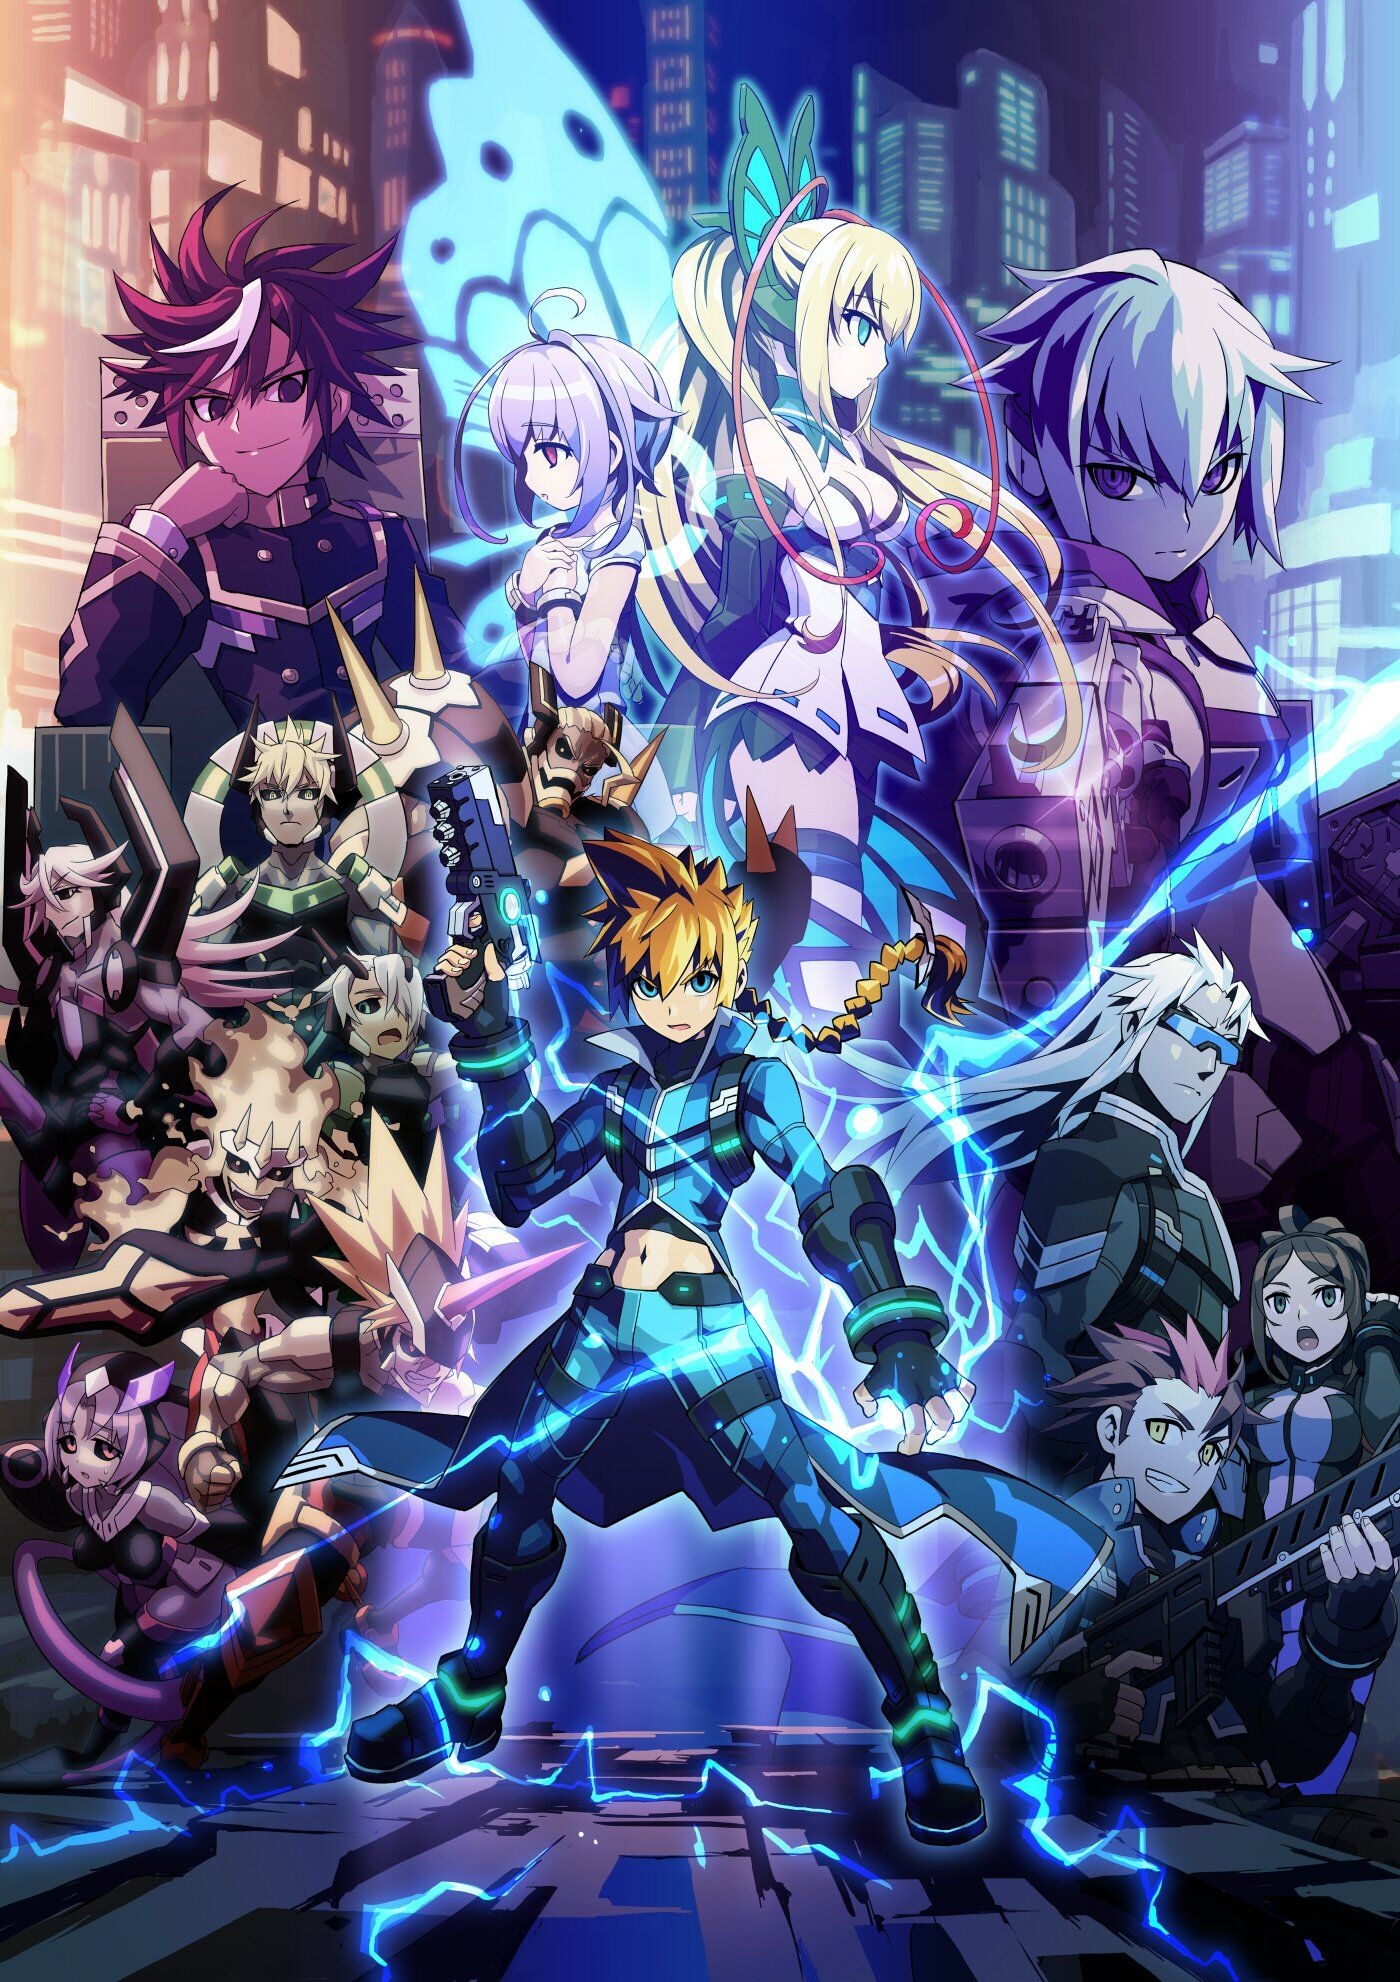 Pin by Joshua Gray on azure striker gunvolt Azure